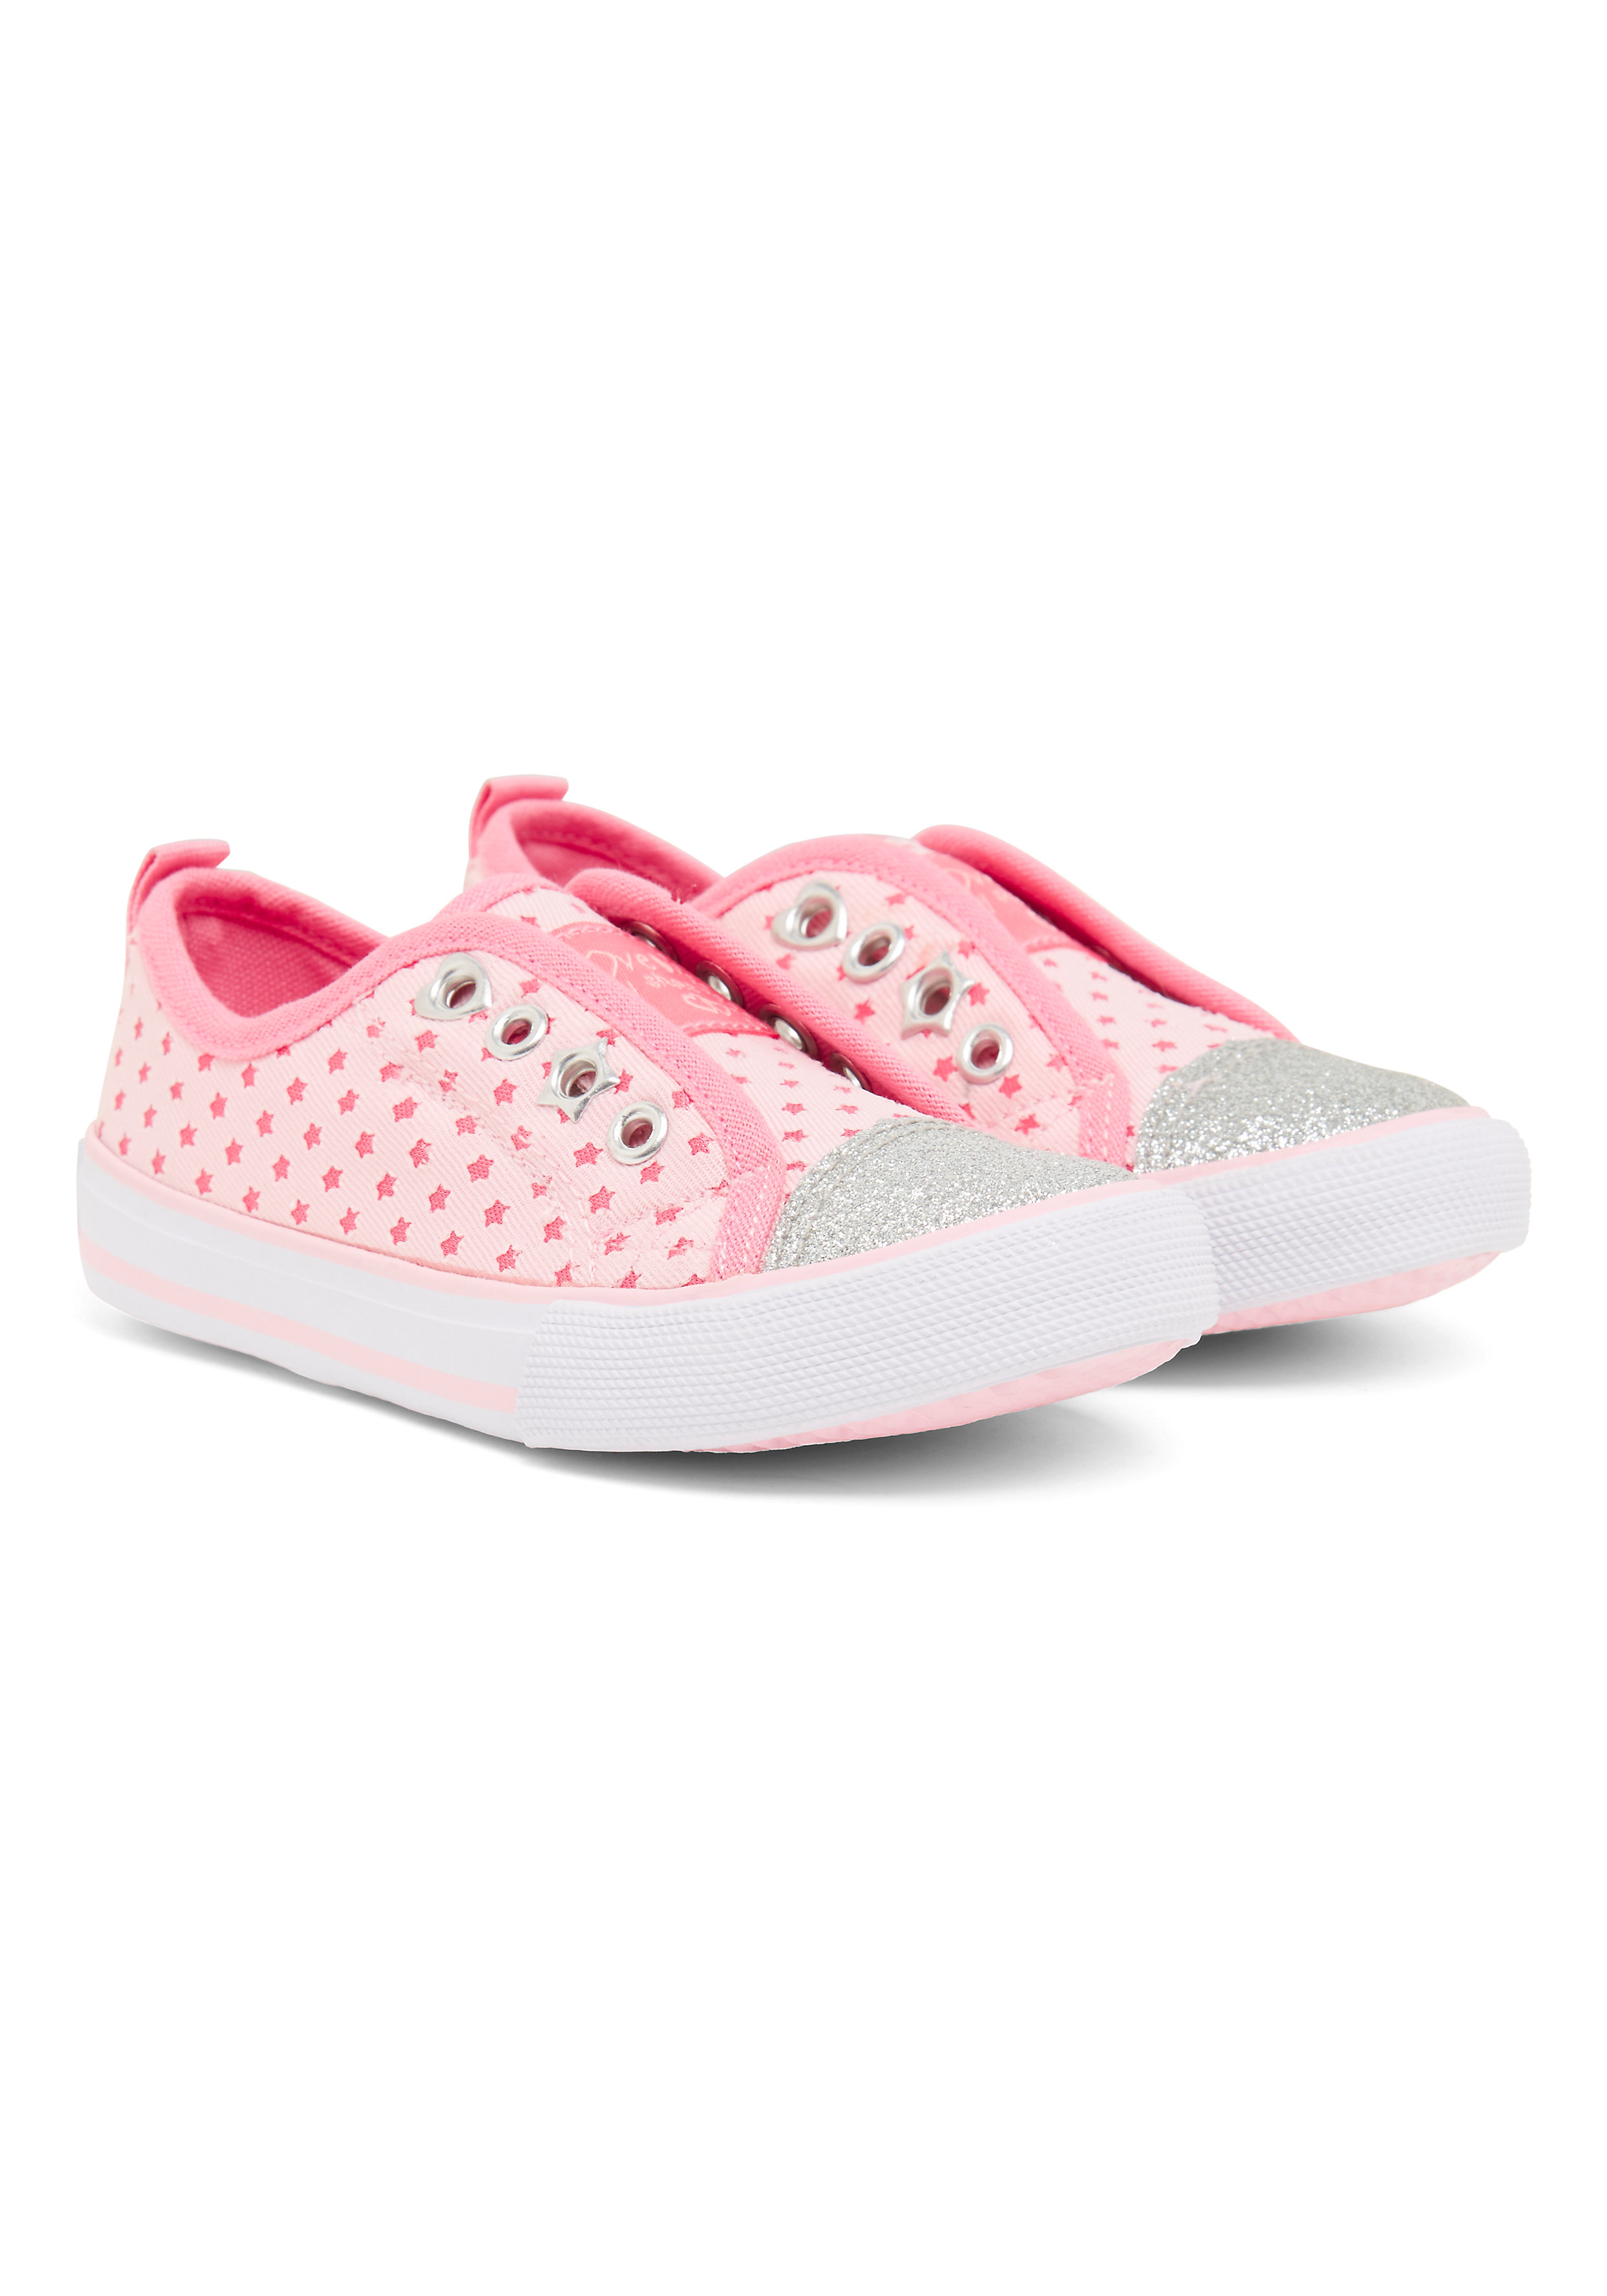 Mothercare | Girls Star Canvas Shoes - Pink